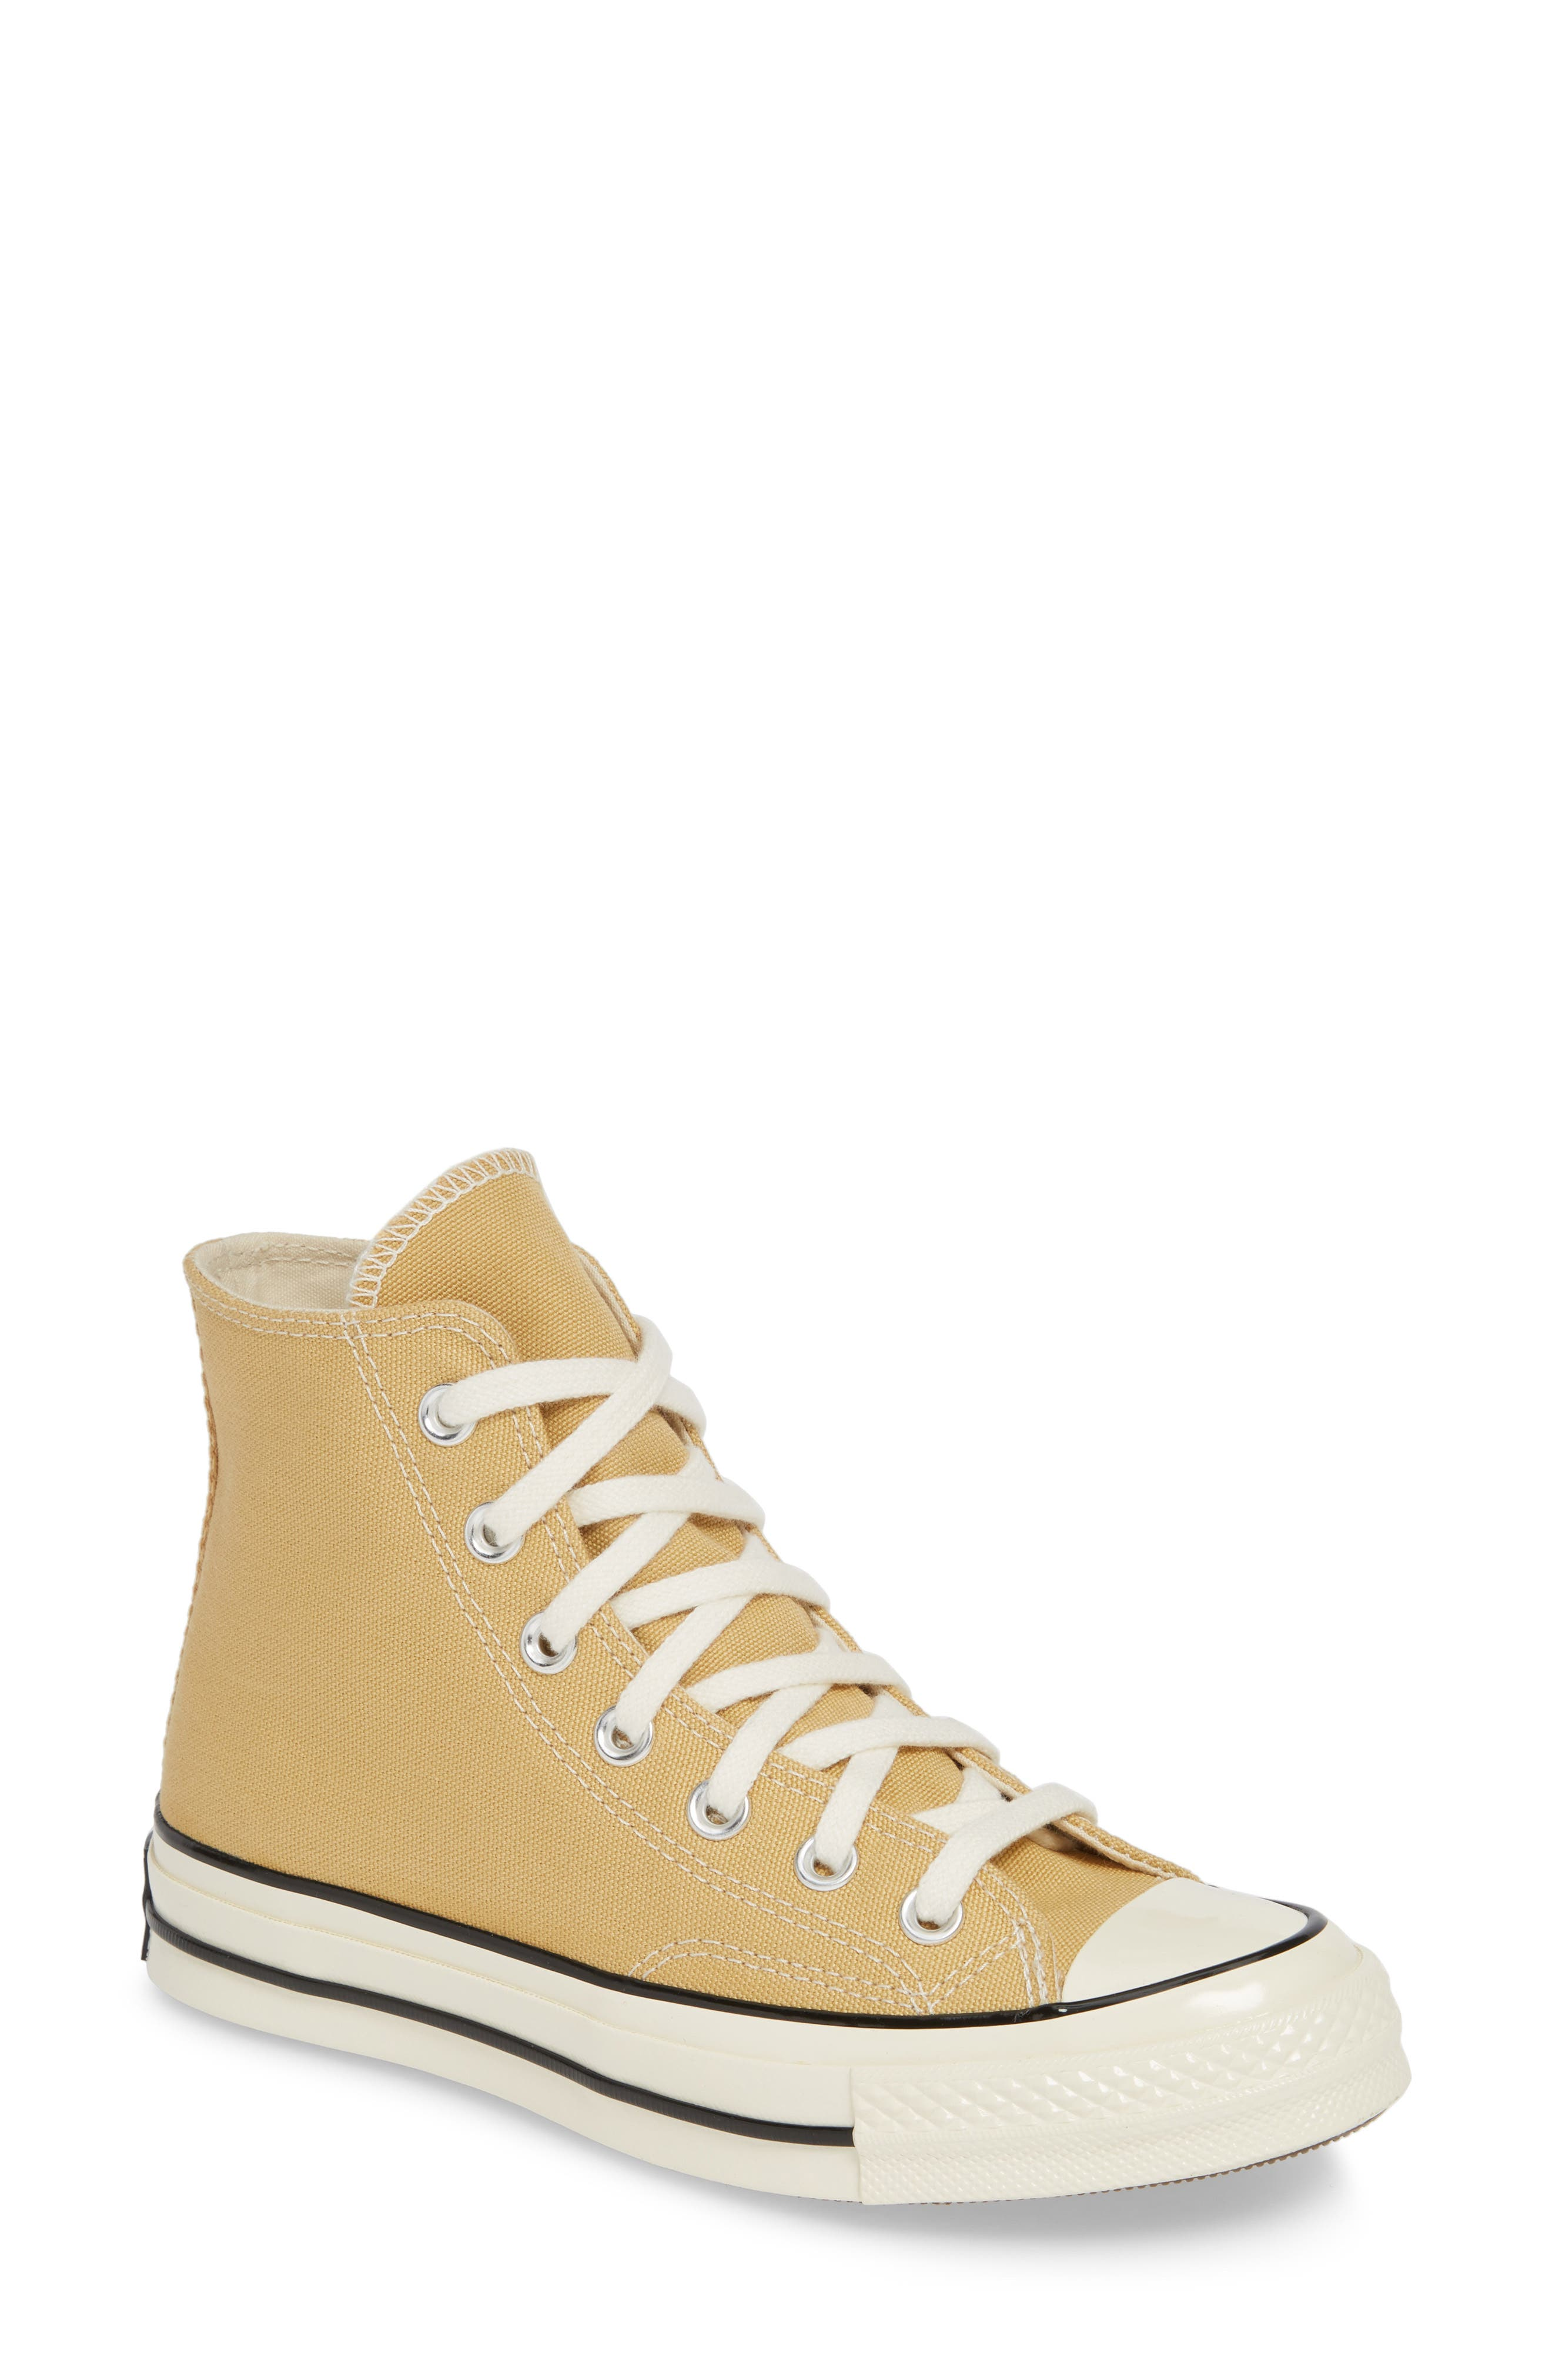 Chuck Taylor<sup>®</sup> All Star<sup>®</sup> 70 High Top Sneaker, Main, color, CLUB GOLD/ EGRET/ BLACK